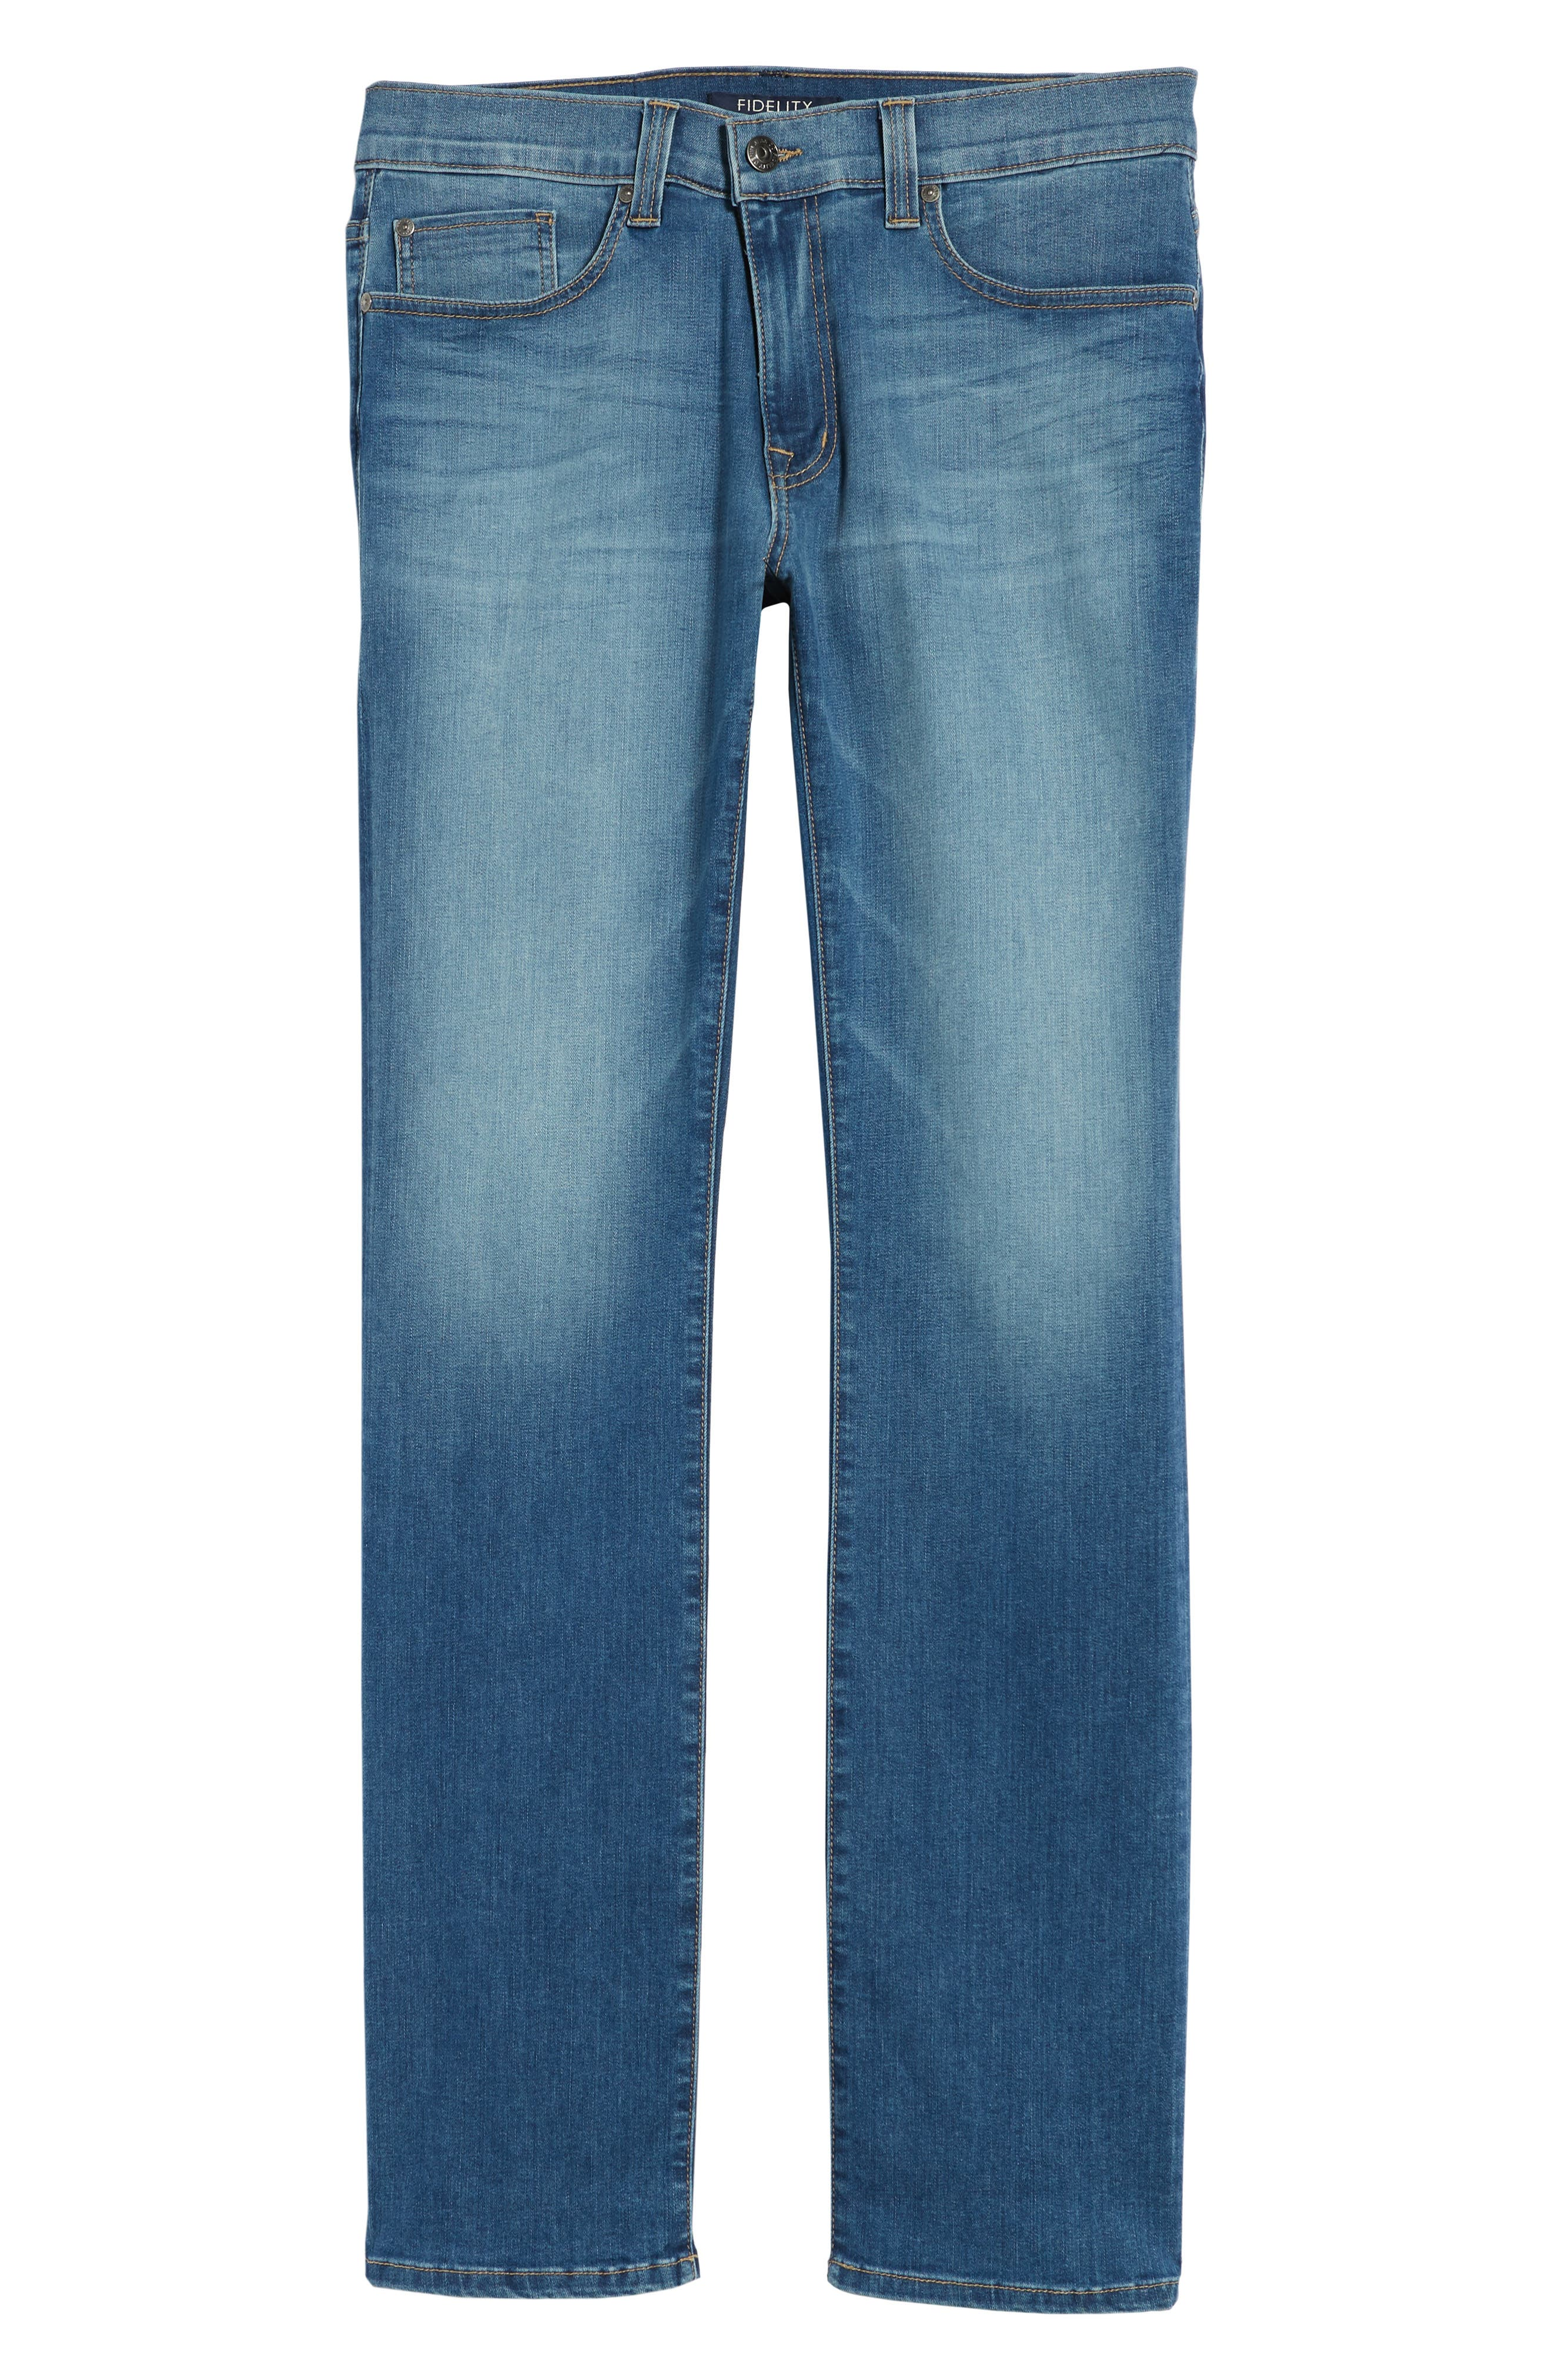 50-11 Relaxed Fit Jeans,                             Alternate thumbnail 6, color,